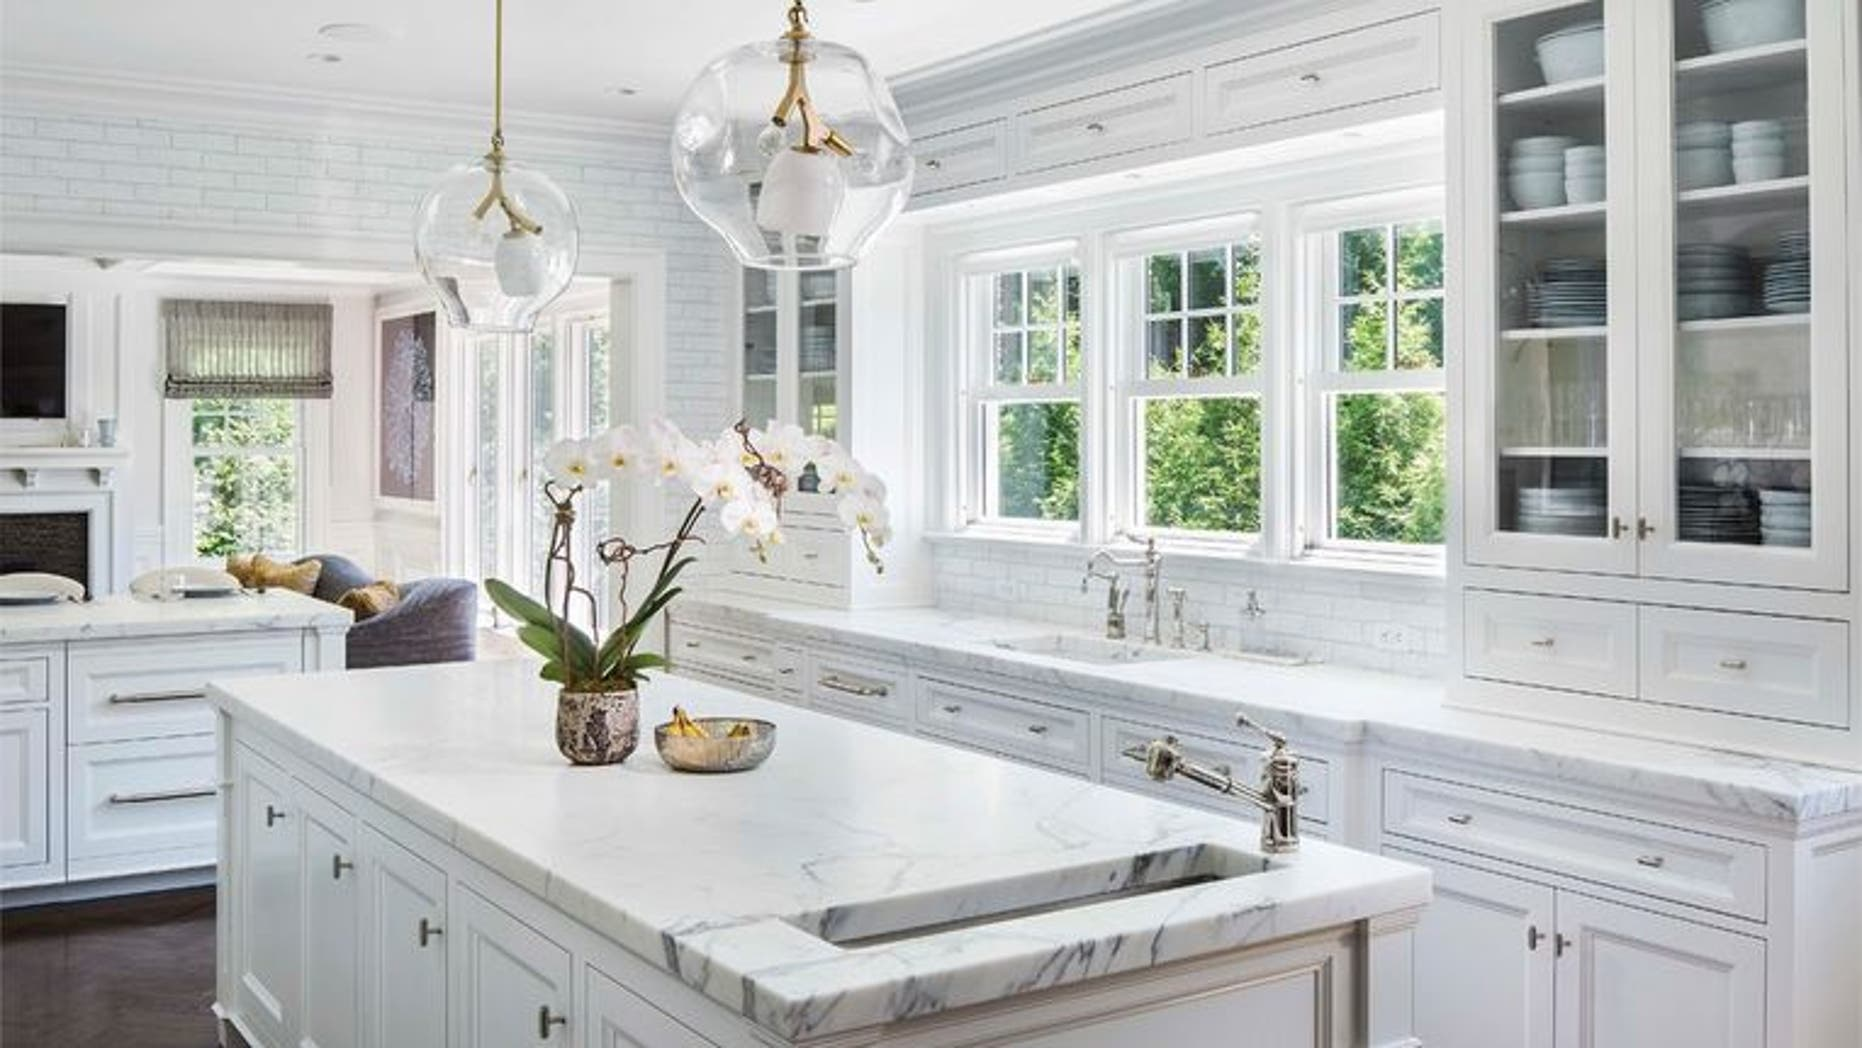 8 must know techniques for keeping your kitchen cabinets sparkling rh foxnews com